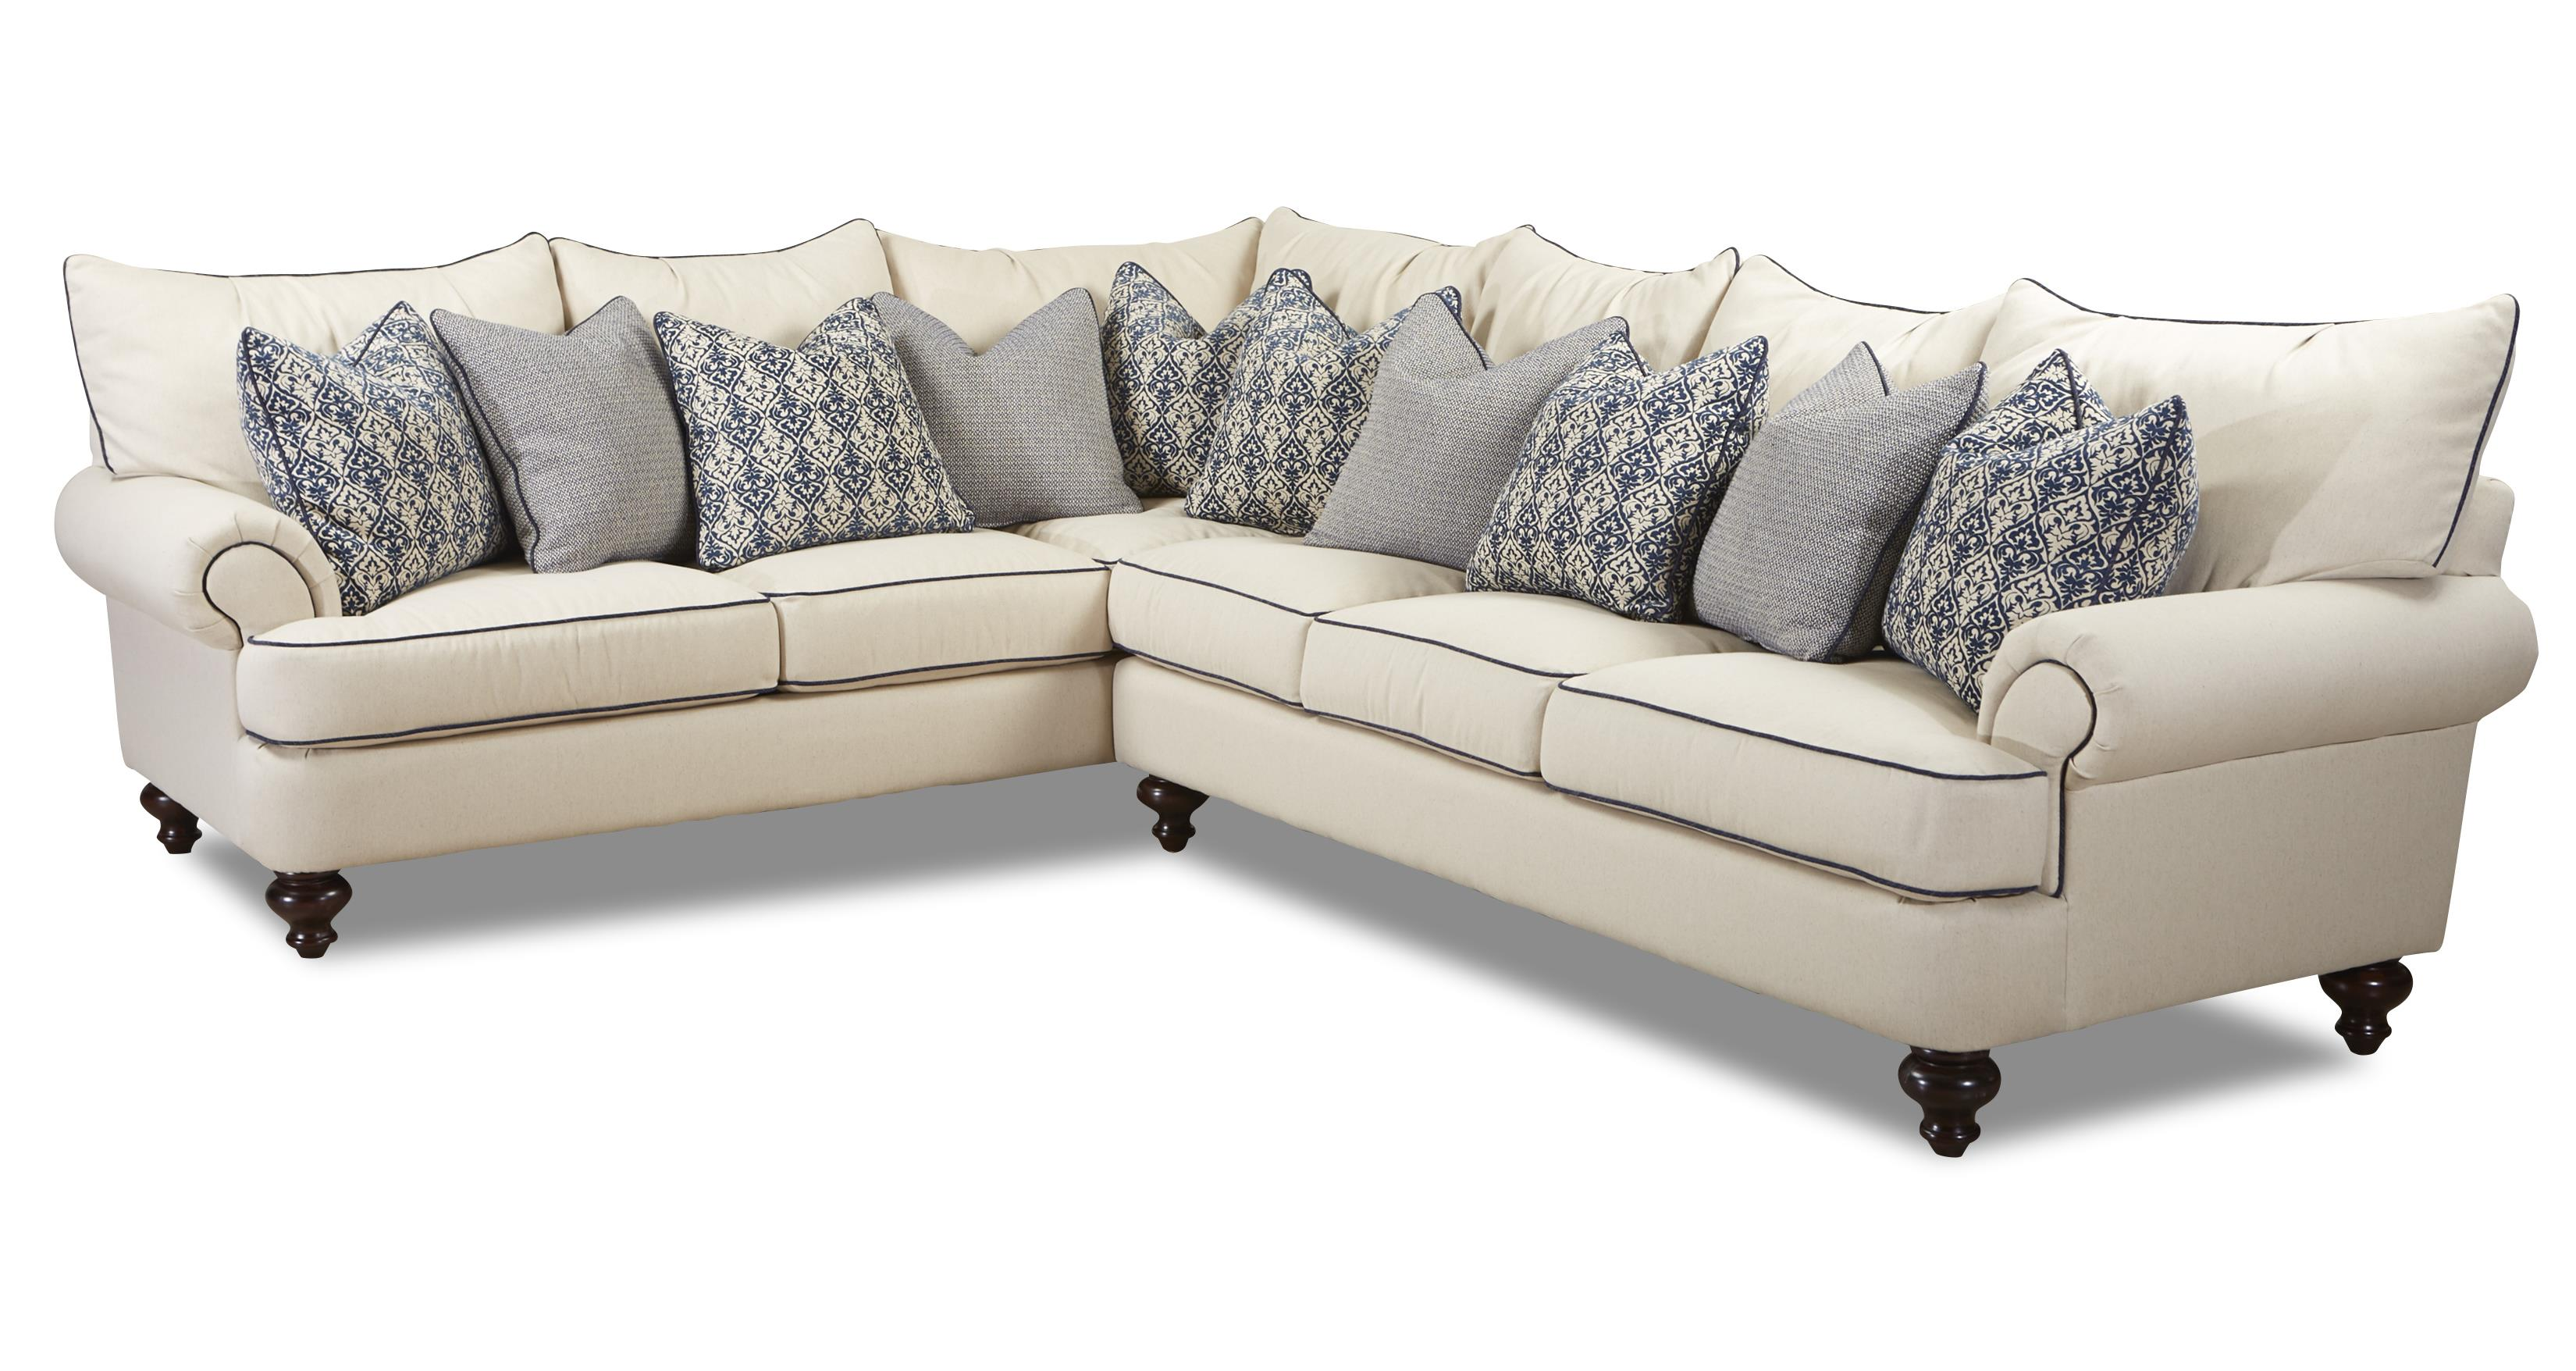 Ashworth D95200 Sectional - Hundreds of Fabrics and Colors. By Klaussner  sc 1 st  Sofas and Sectionals : klaussner sectional sofa - Sectionals, Sofas & Couches